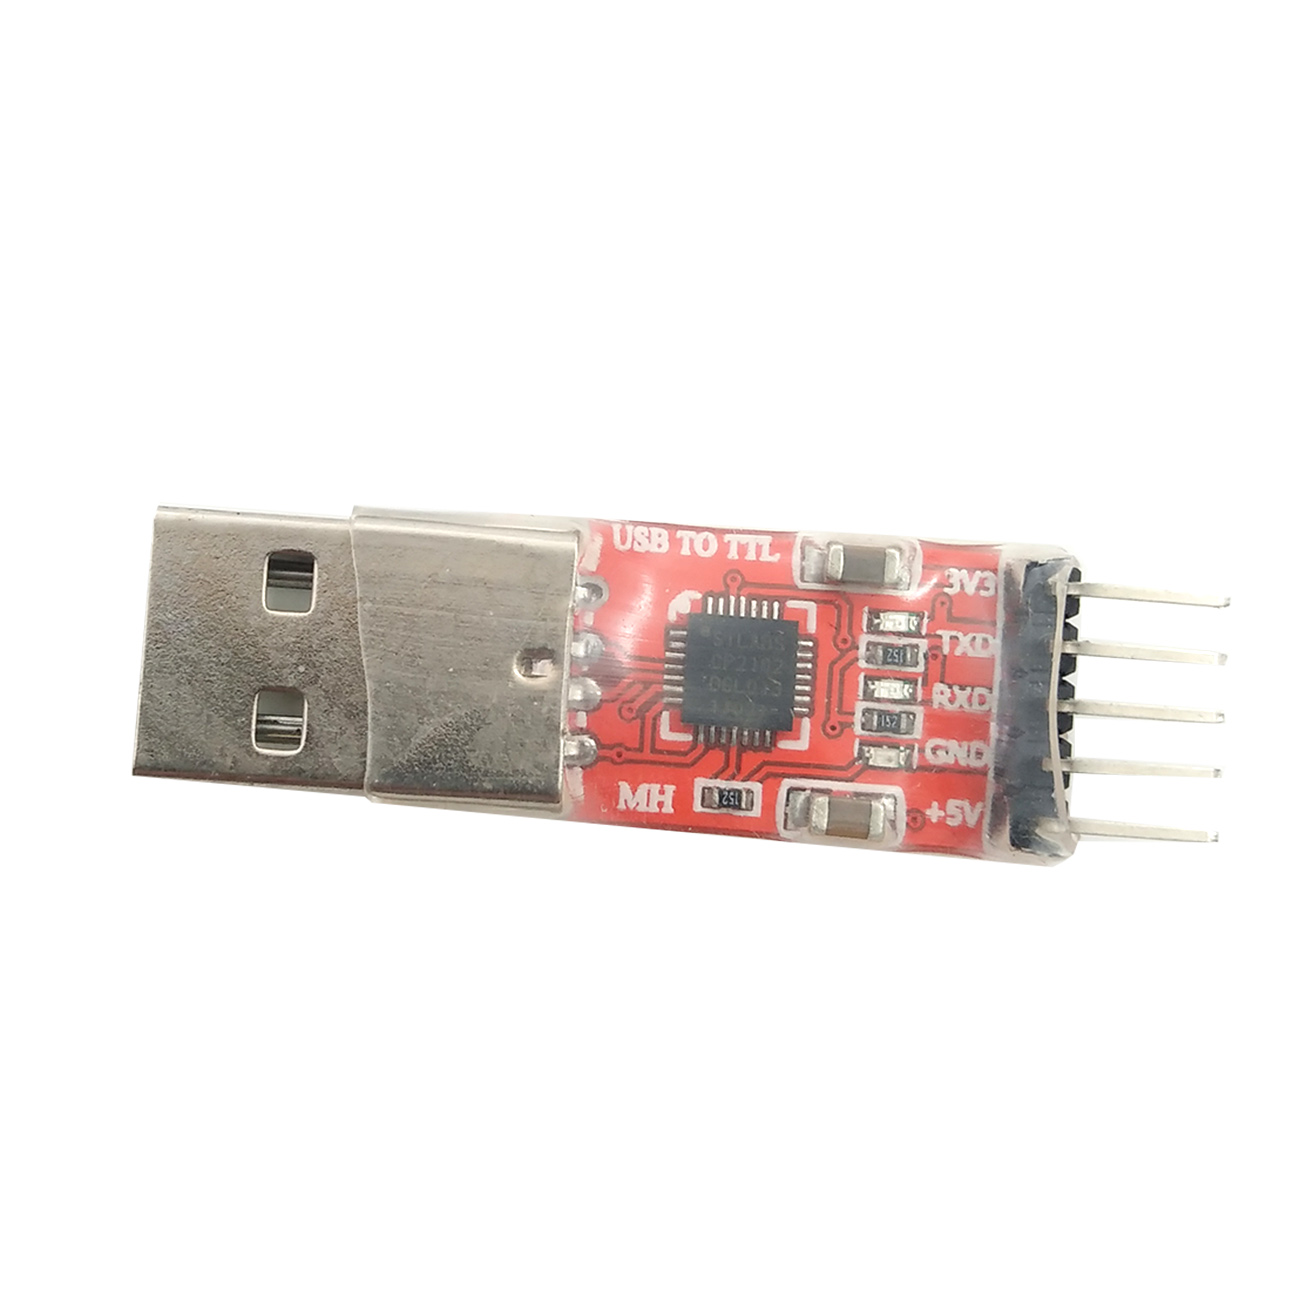 Image 5 - New SIM7100C PCIE 4G 4g 3g 2g communication module 5 mold LTE TDD FDD GPS module-in Integrated Circuits from Electronic Components & Supplies